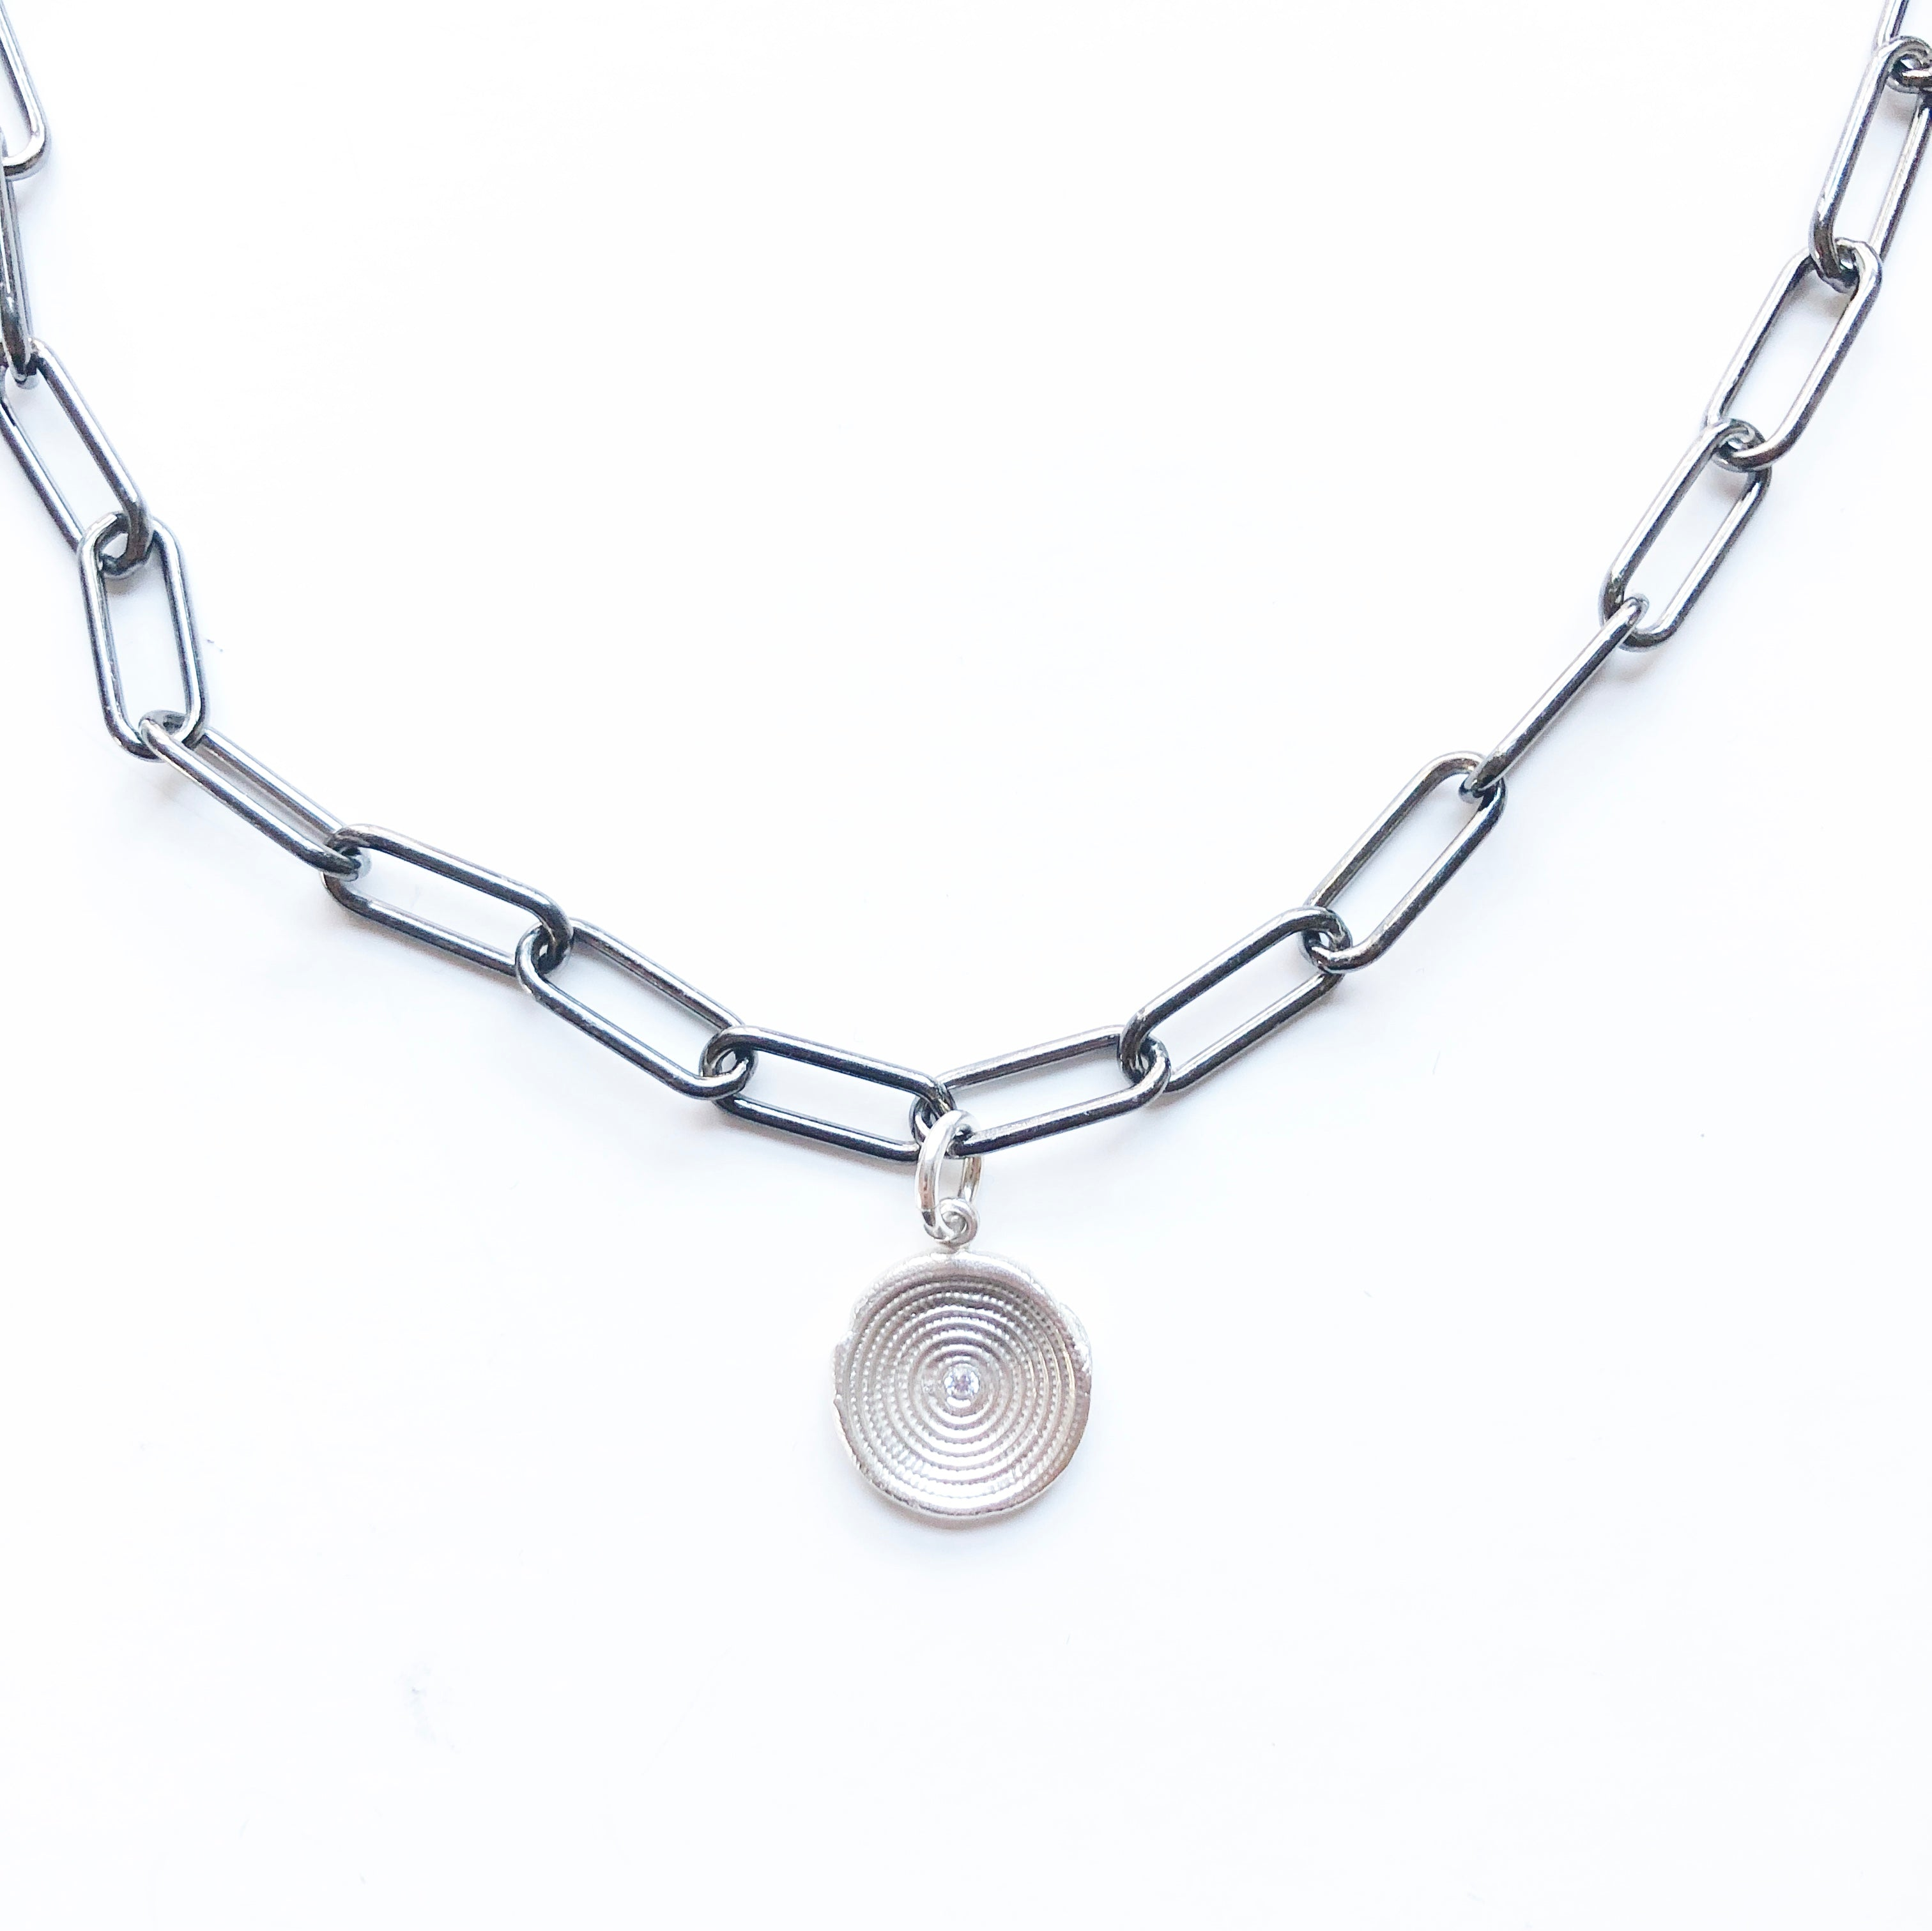 Zen-Circles-Silver-Charm-Necklace-Paper-Clip-Chain-MAS-Designs-Jewelry